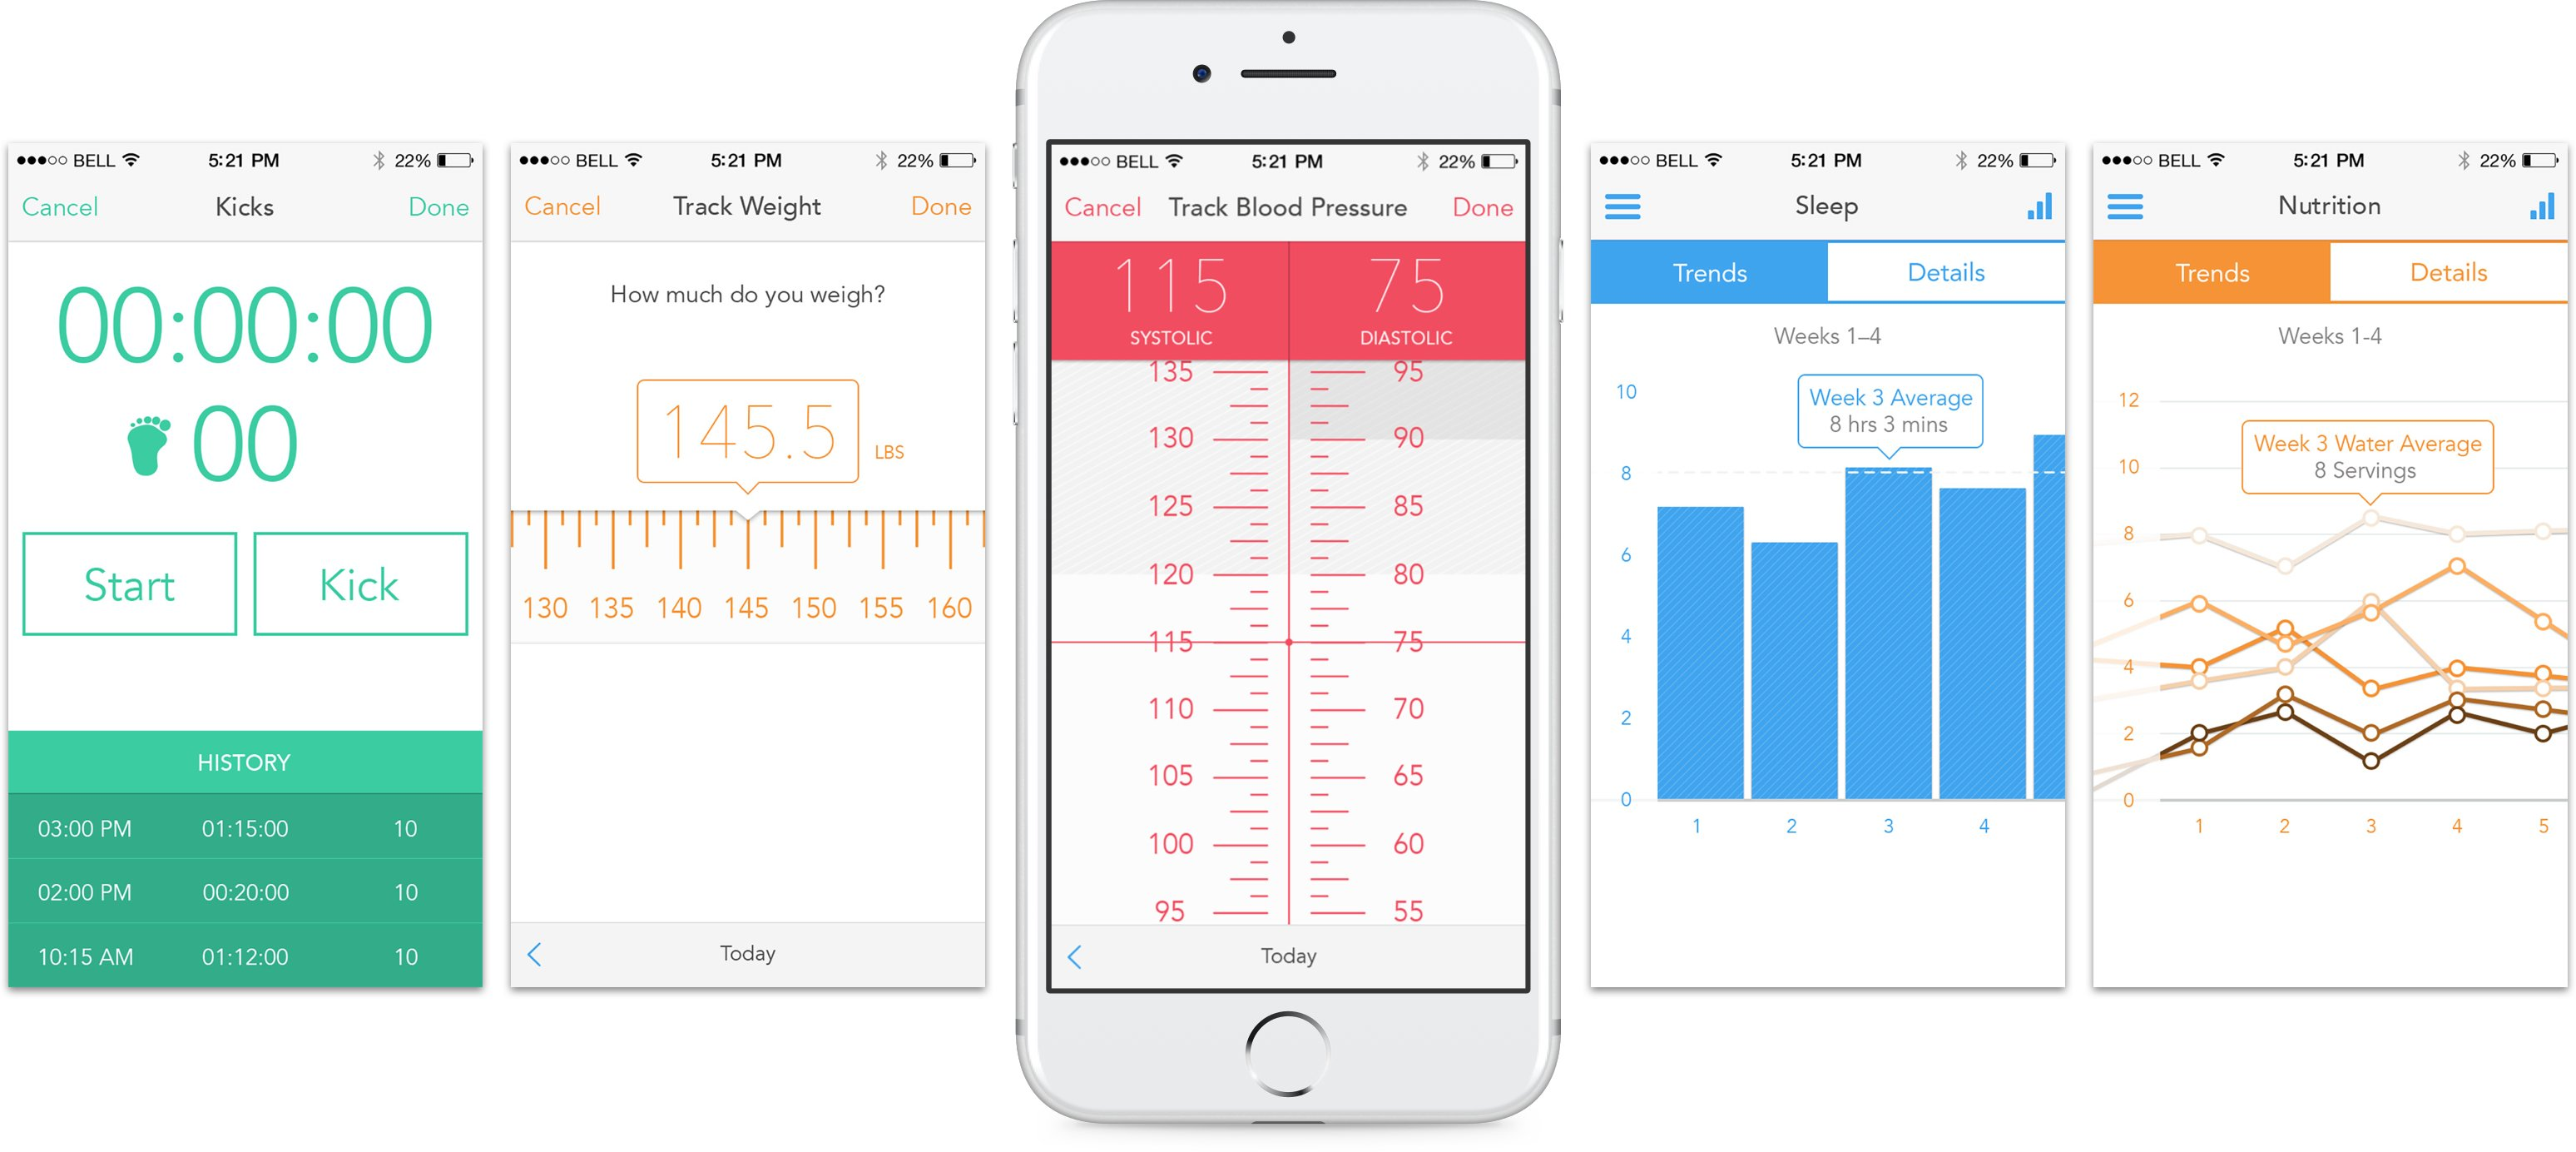 Ovia Health App Screens featuring metrics for kicks, weight, blood pressure, sleep, and nutrition.